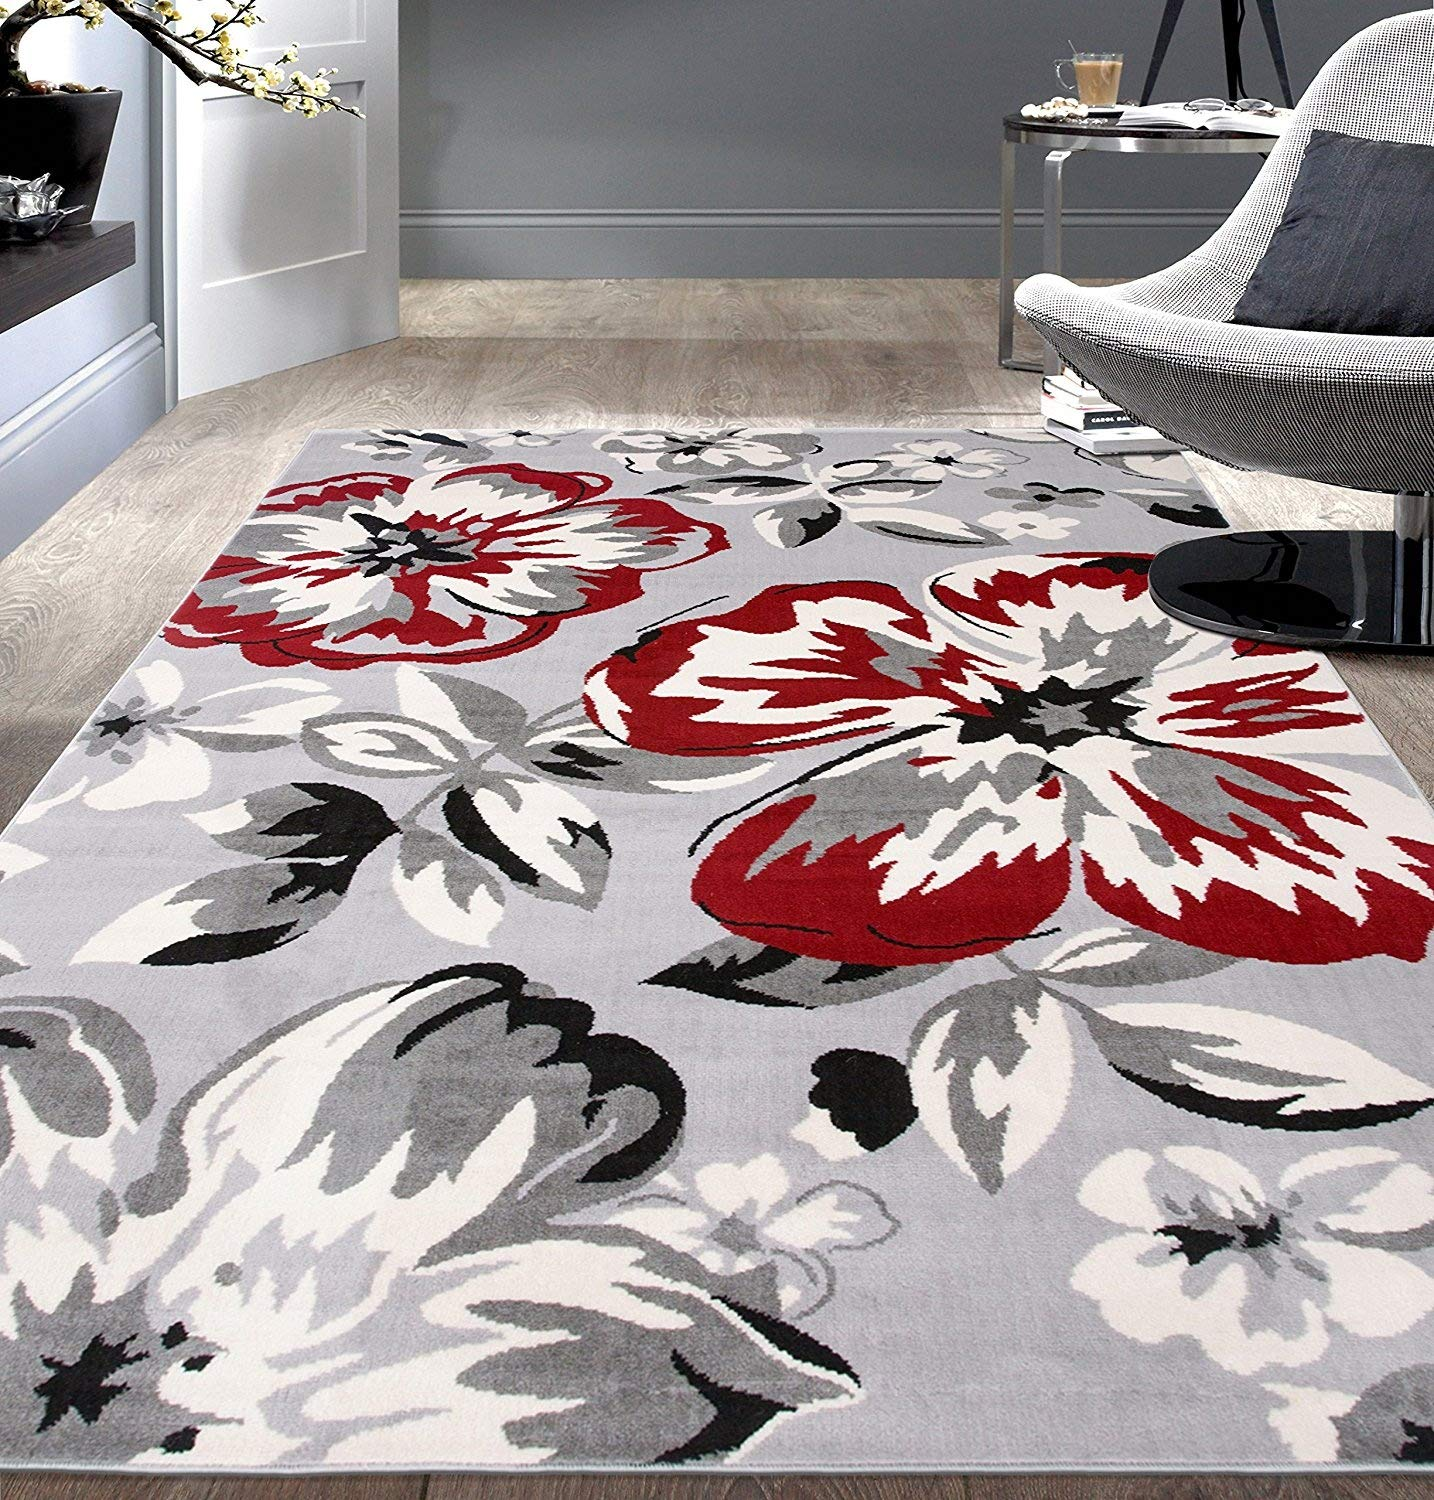 Rugshop Modern Floral Area Rug, 2' X 3', Cream 2' X 3' World Rug Gallery 9098Cream 2'x3'